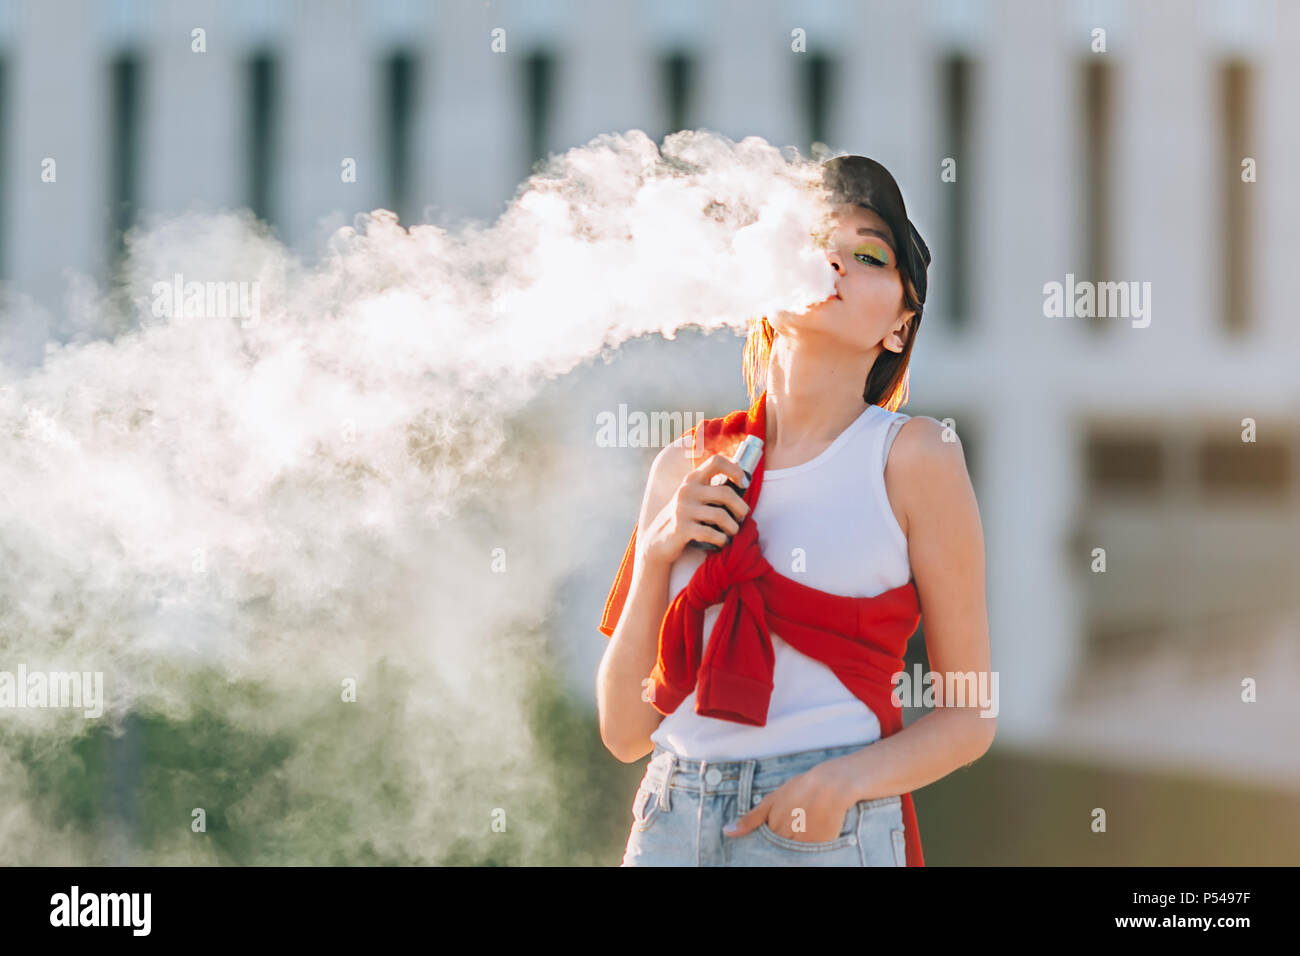 Pretty young asian girl vape popular ecig gadget,vaping device.Happy brunette vaper girl with e-cig.Portrait of smoker female model with electronic ci - Stock Image